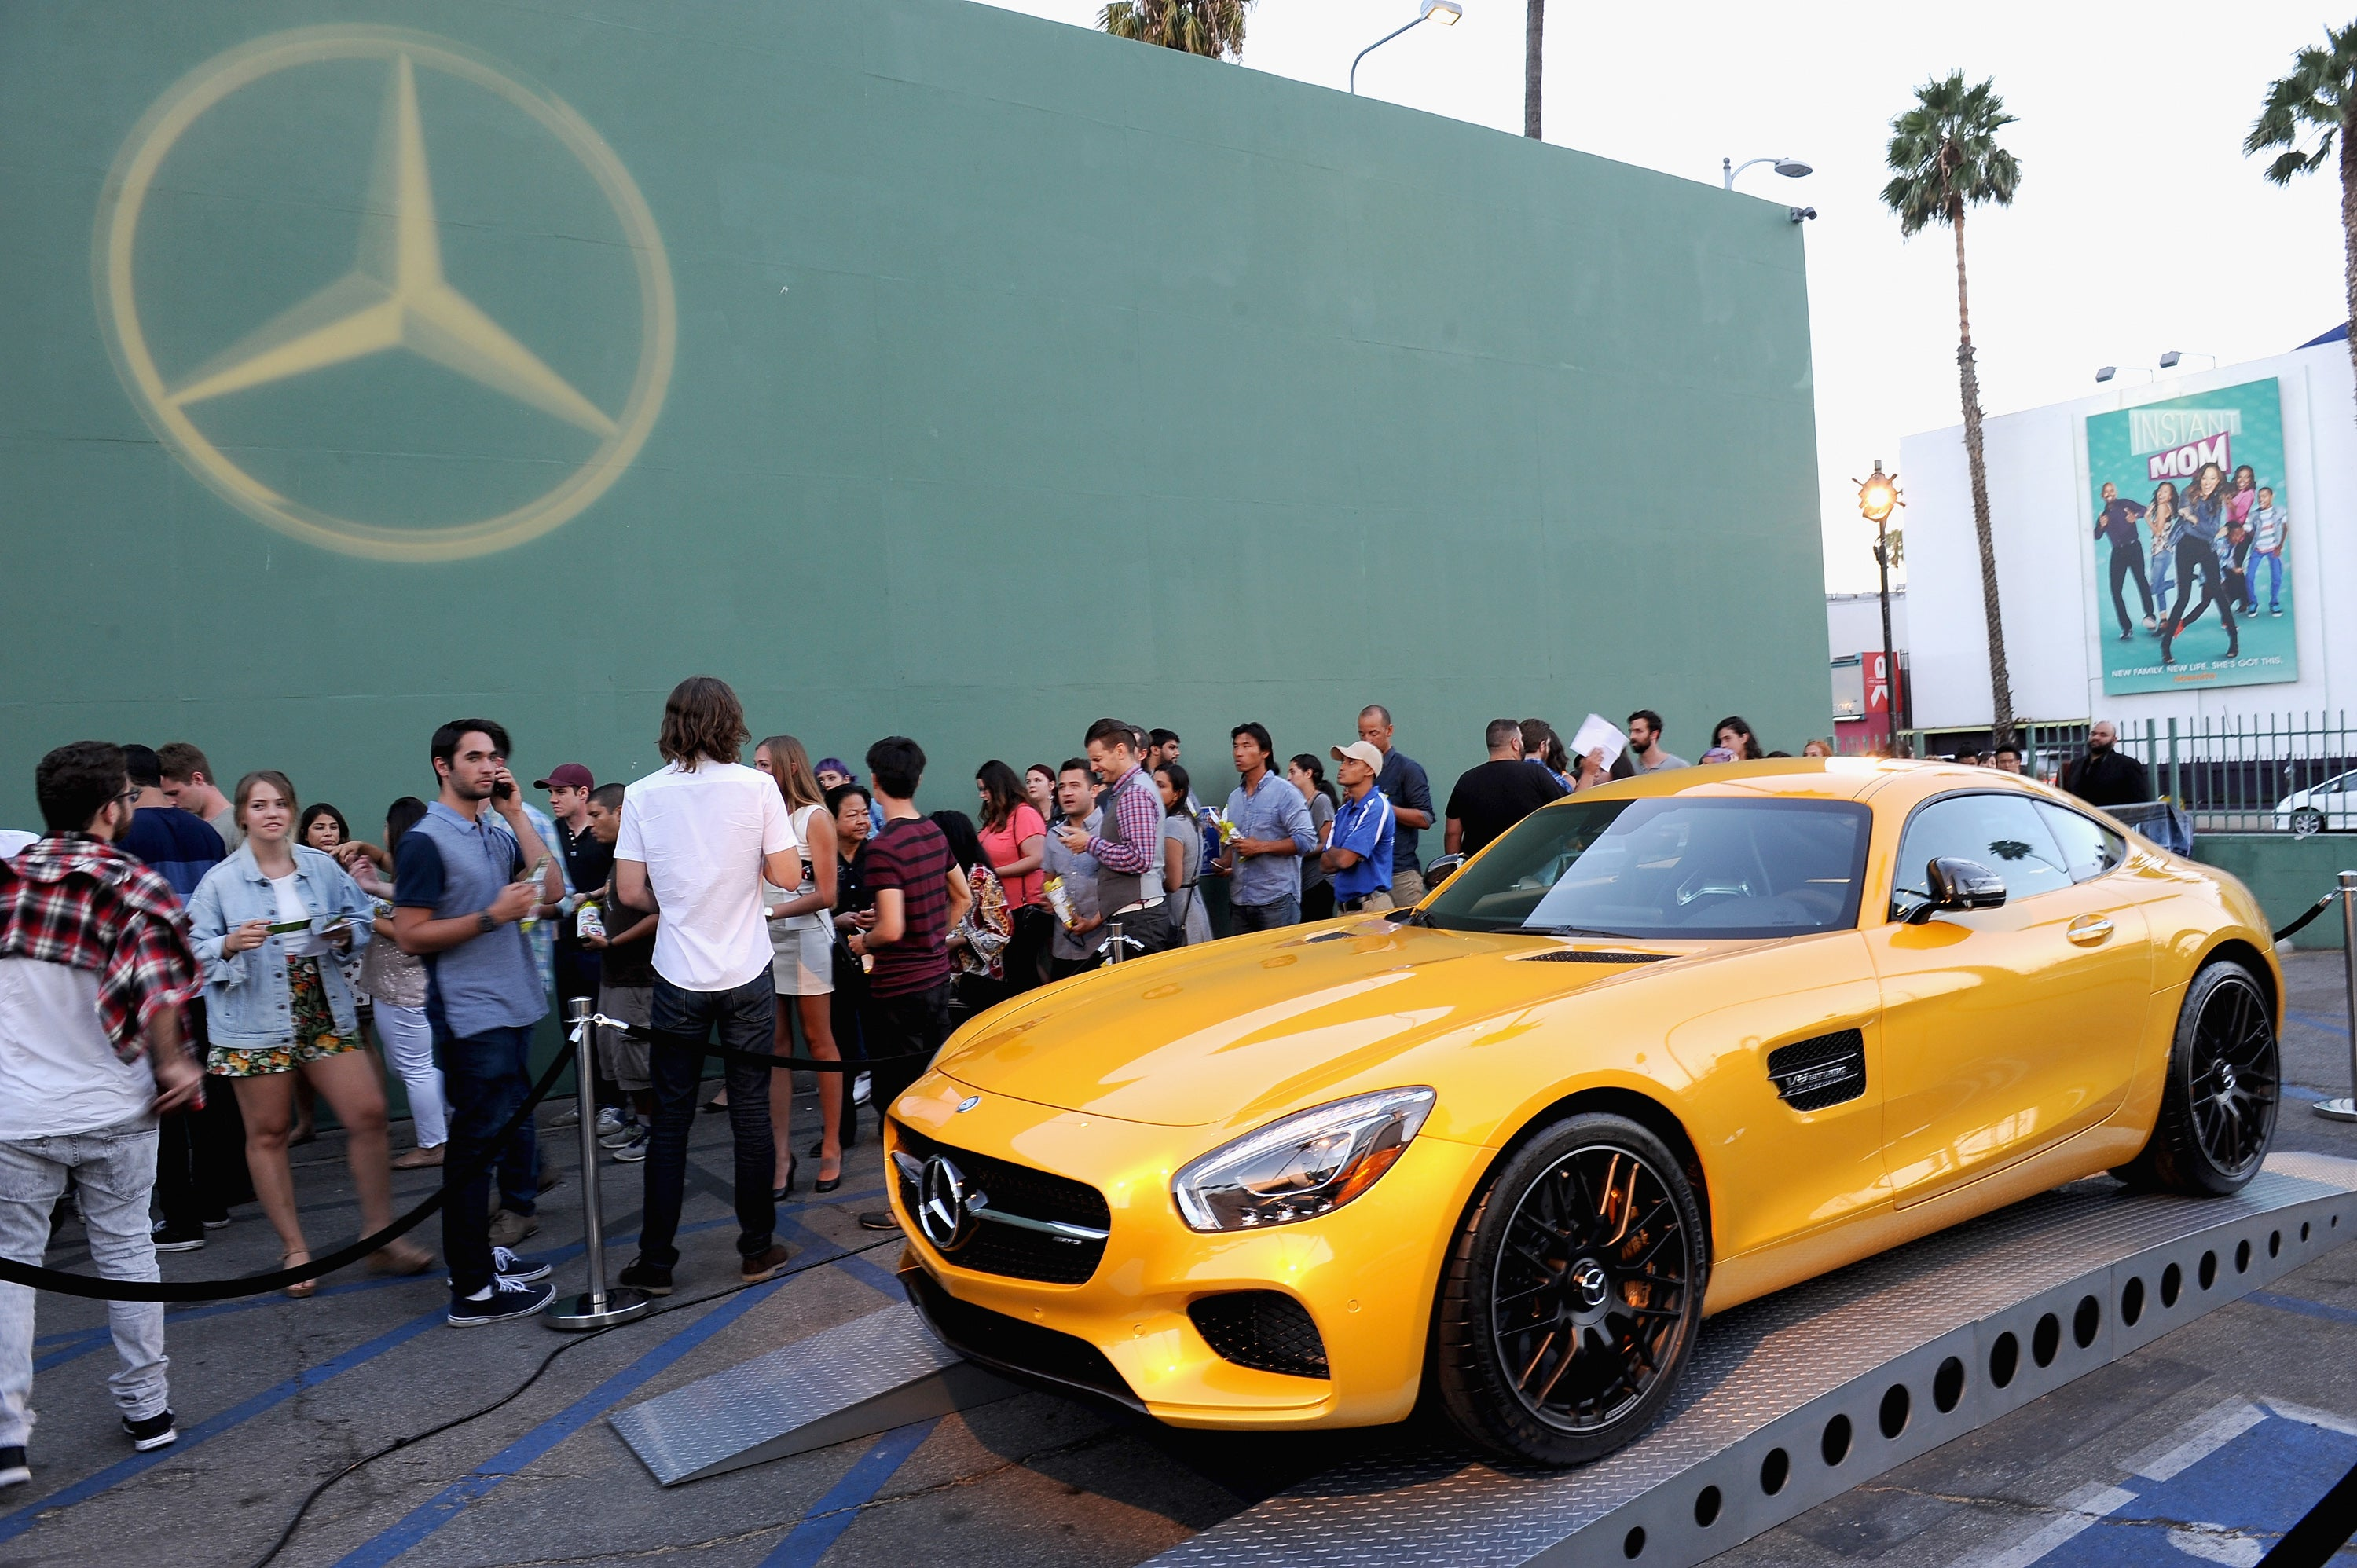 A view of a Mercedes-Benz on display at the Mercedes-Benz 2015 Evolution Tour on August 4, 2015 in Los Angeles, California.  (Photo by Angela Weiss/Getty Images for Mercedes-Benz)